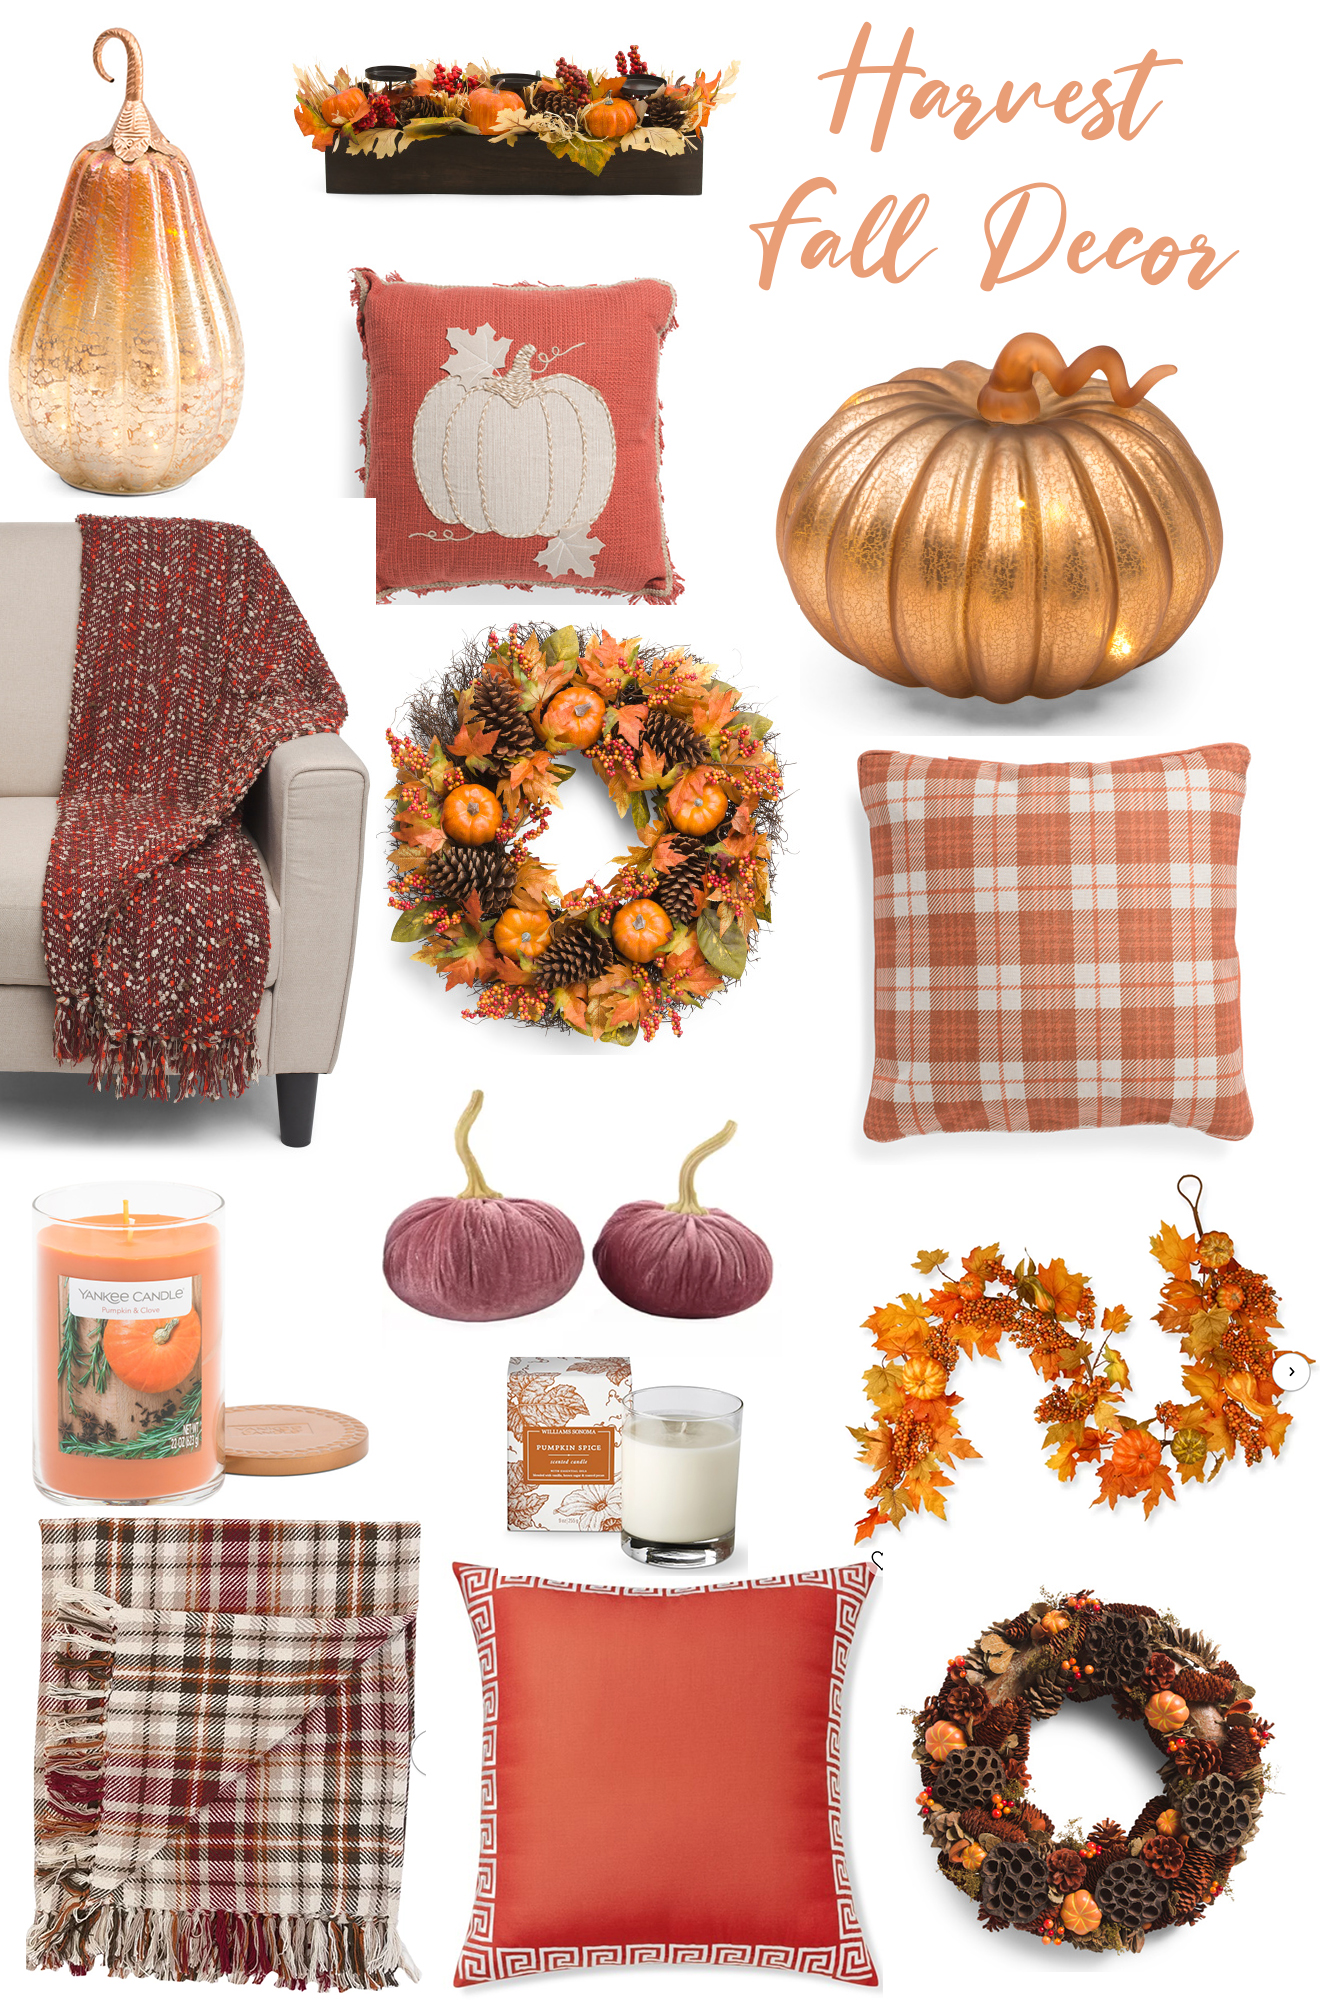 Colorful Fall Outdoor Inspiration and Decor - Pumpkins, harvest, oranges, reds, yellows and more this year. Everything a cozy outdoor space needs in autumn!